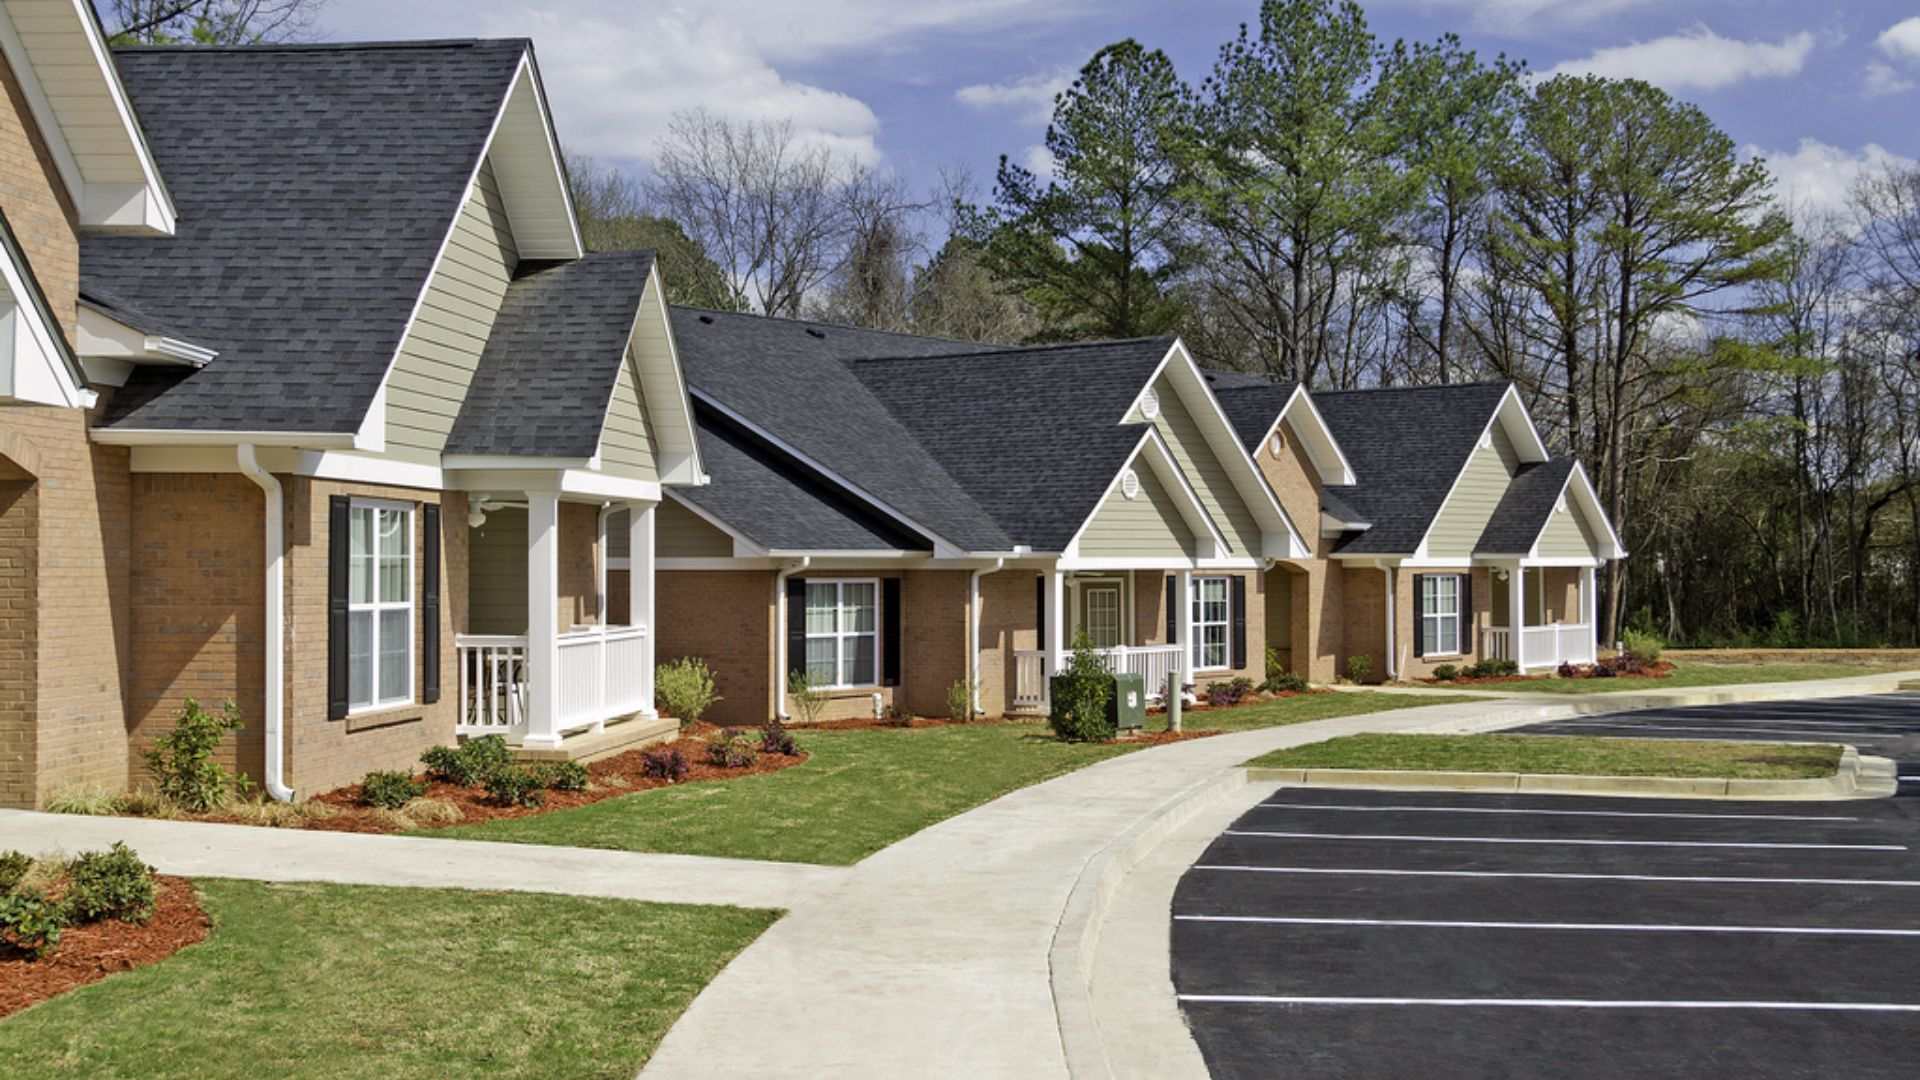 Warner Robins GA Low Income Housing and Apartments